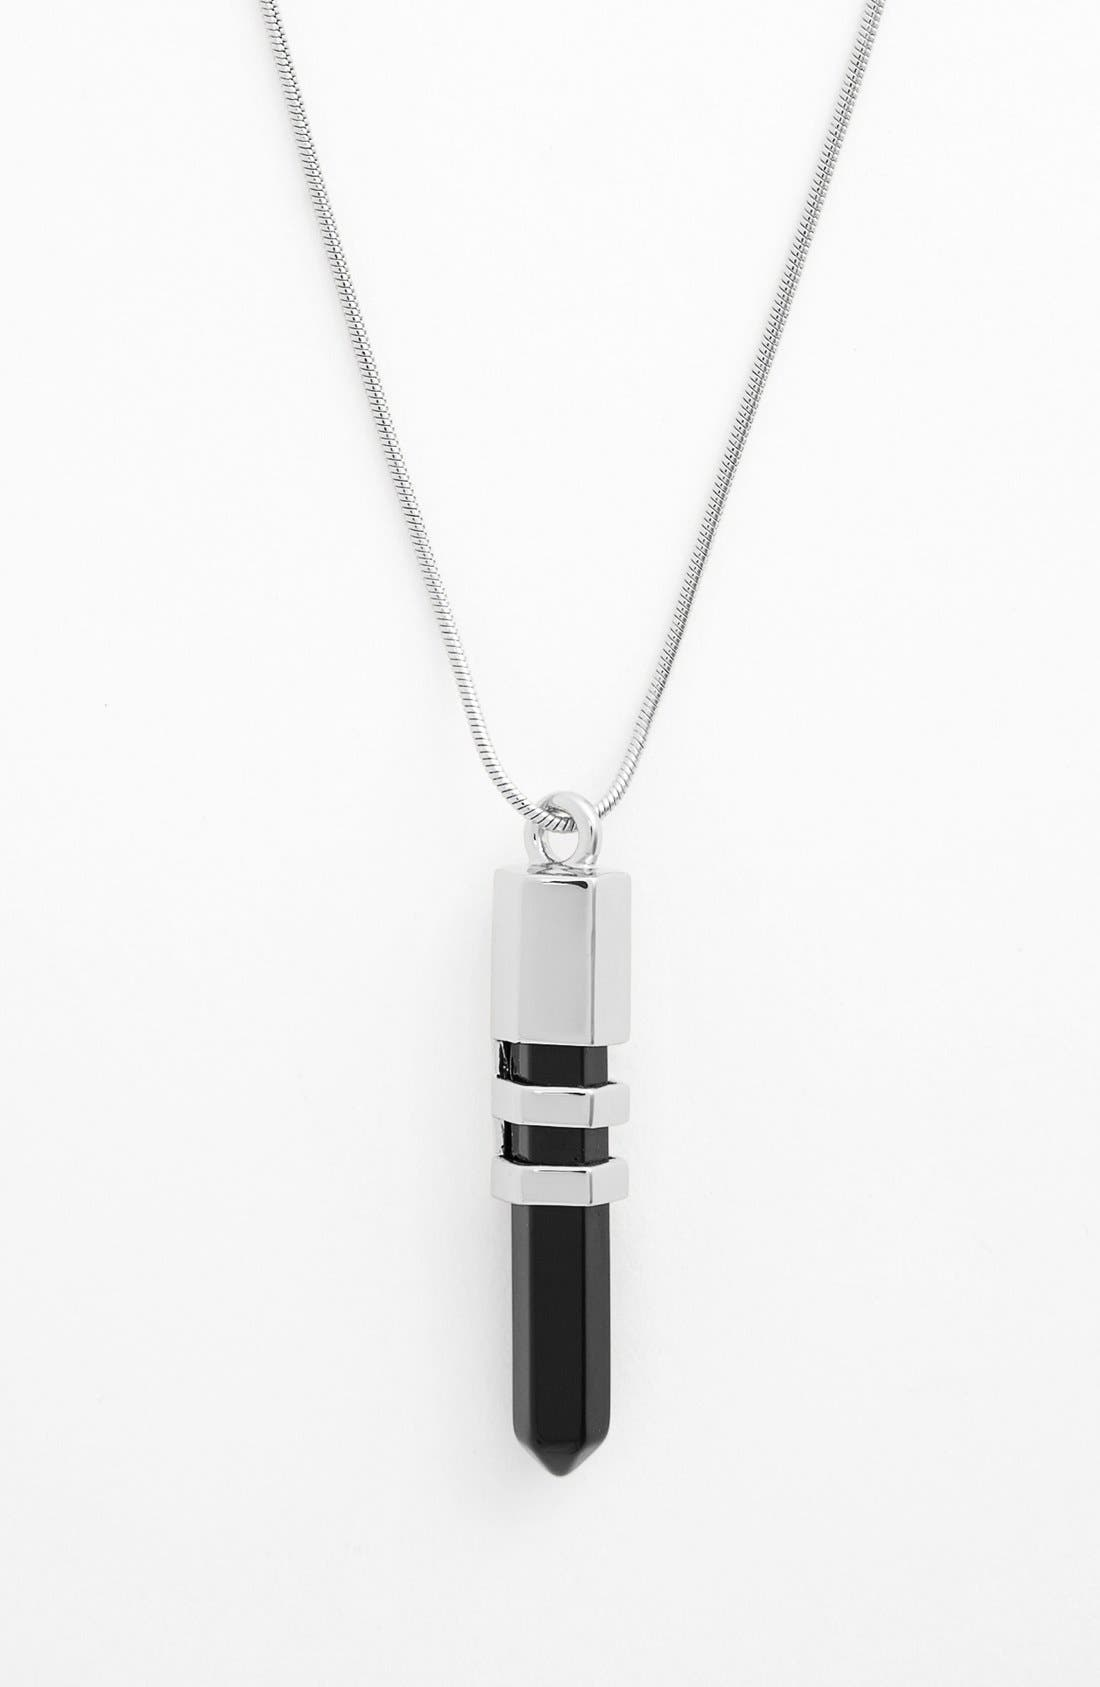 Main Image - Vince Camuto 'Bullet Proof' Pendant Necklace